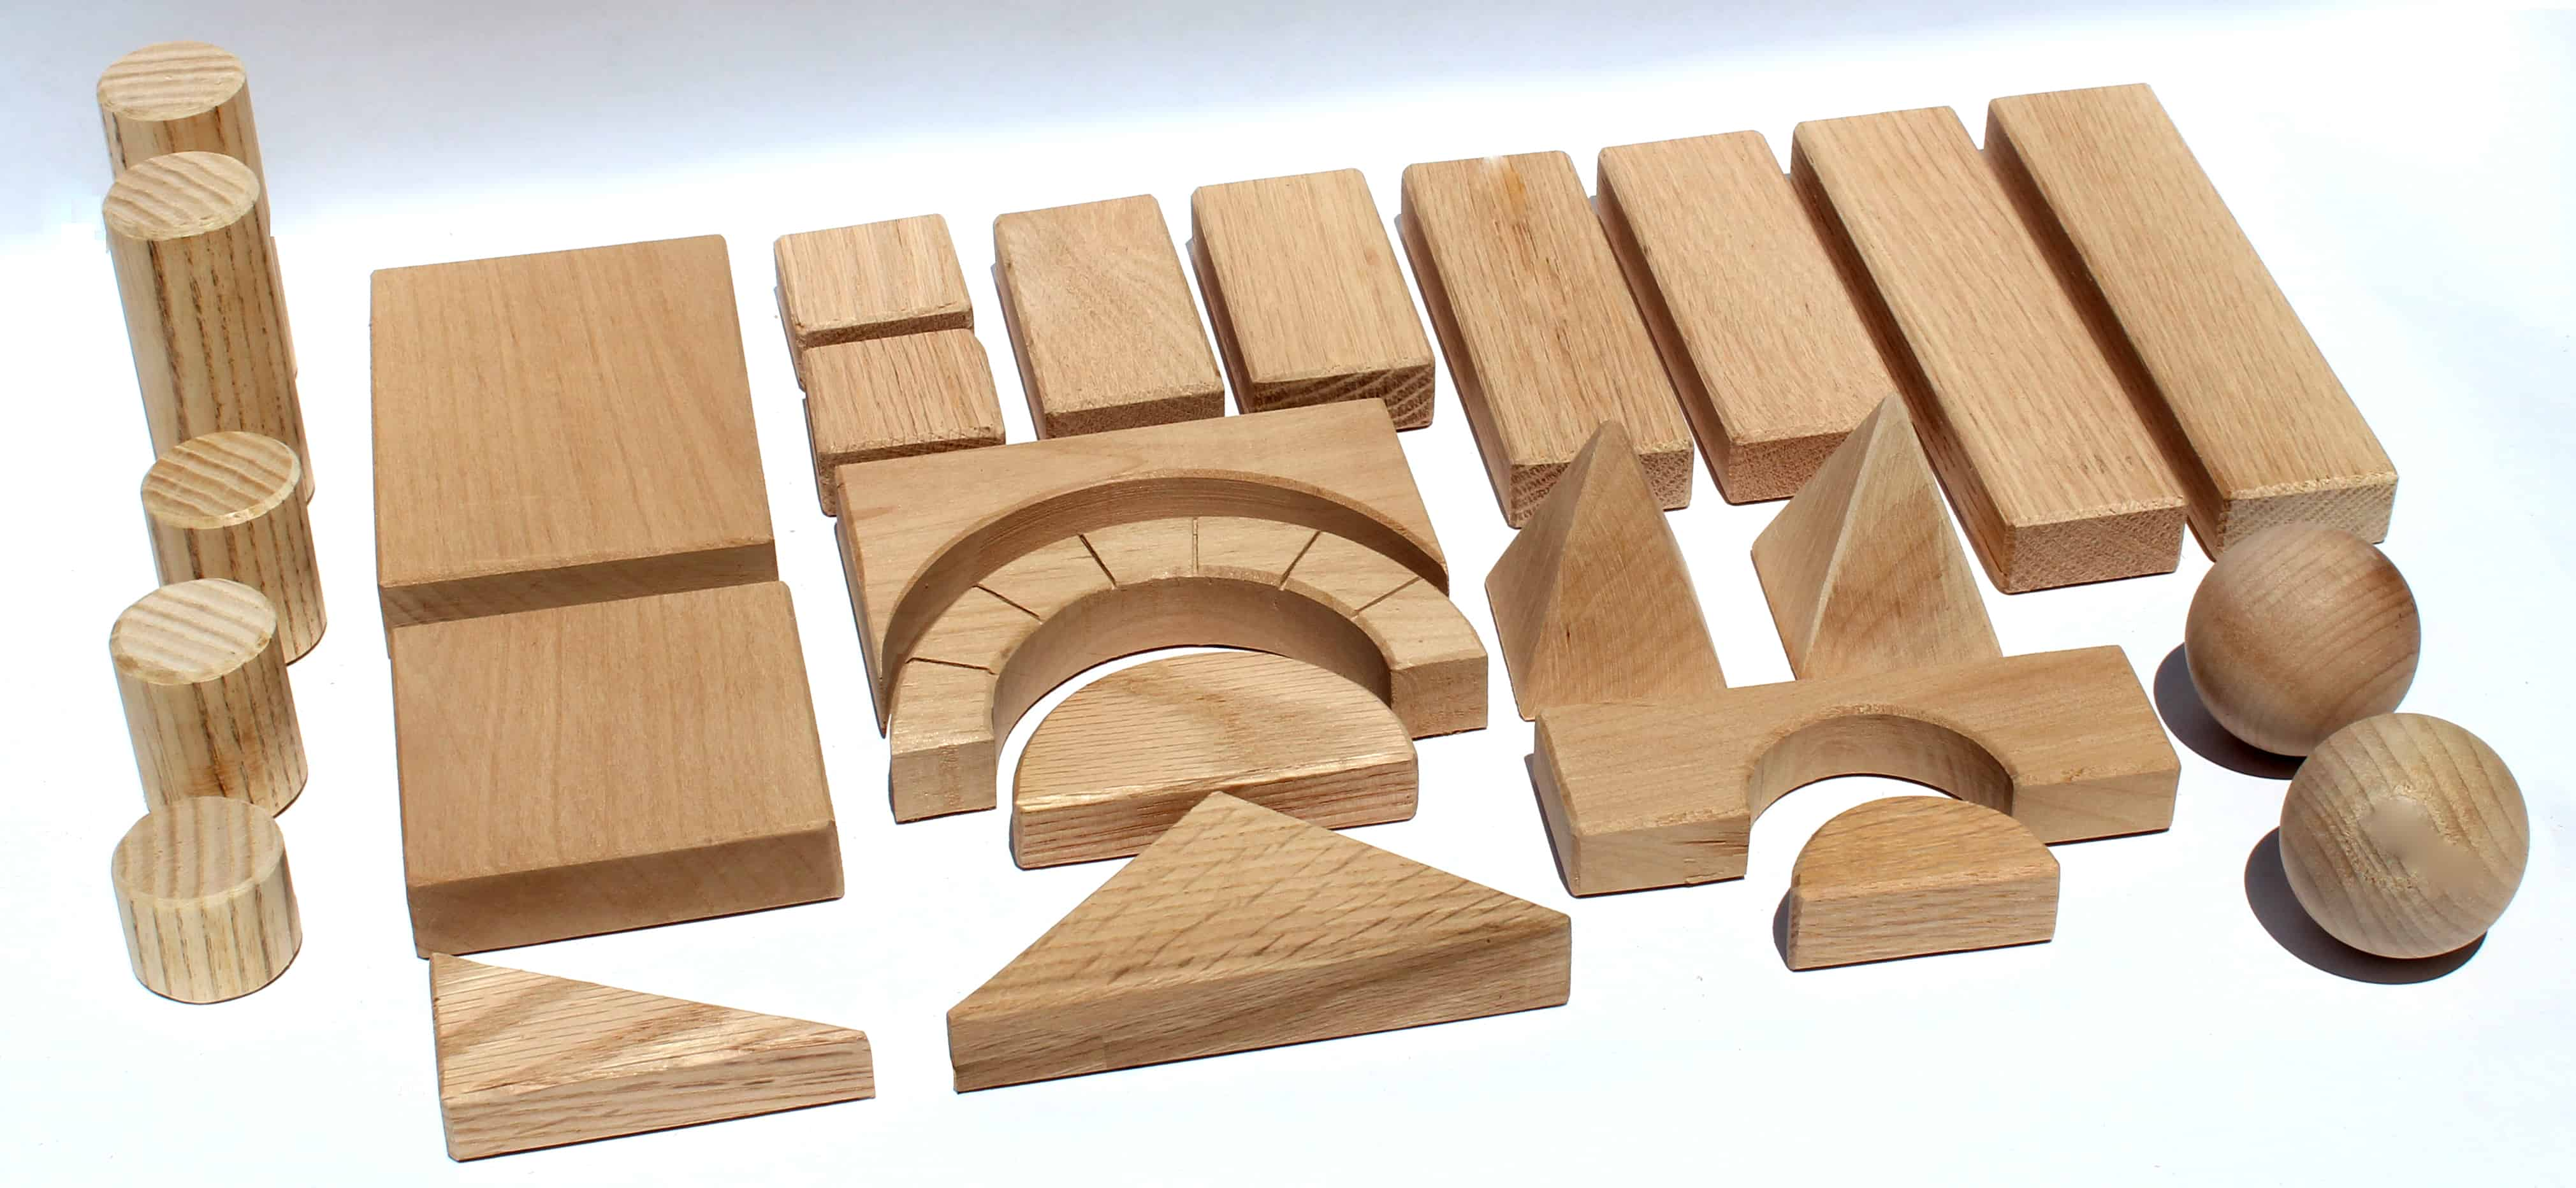 Woodworking Plans Collection Forest